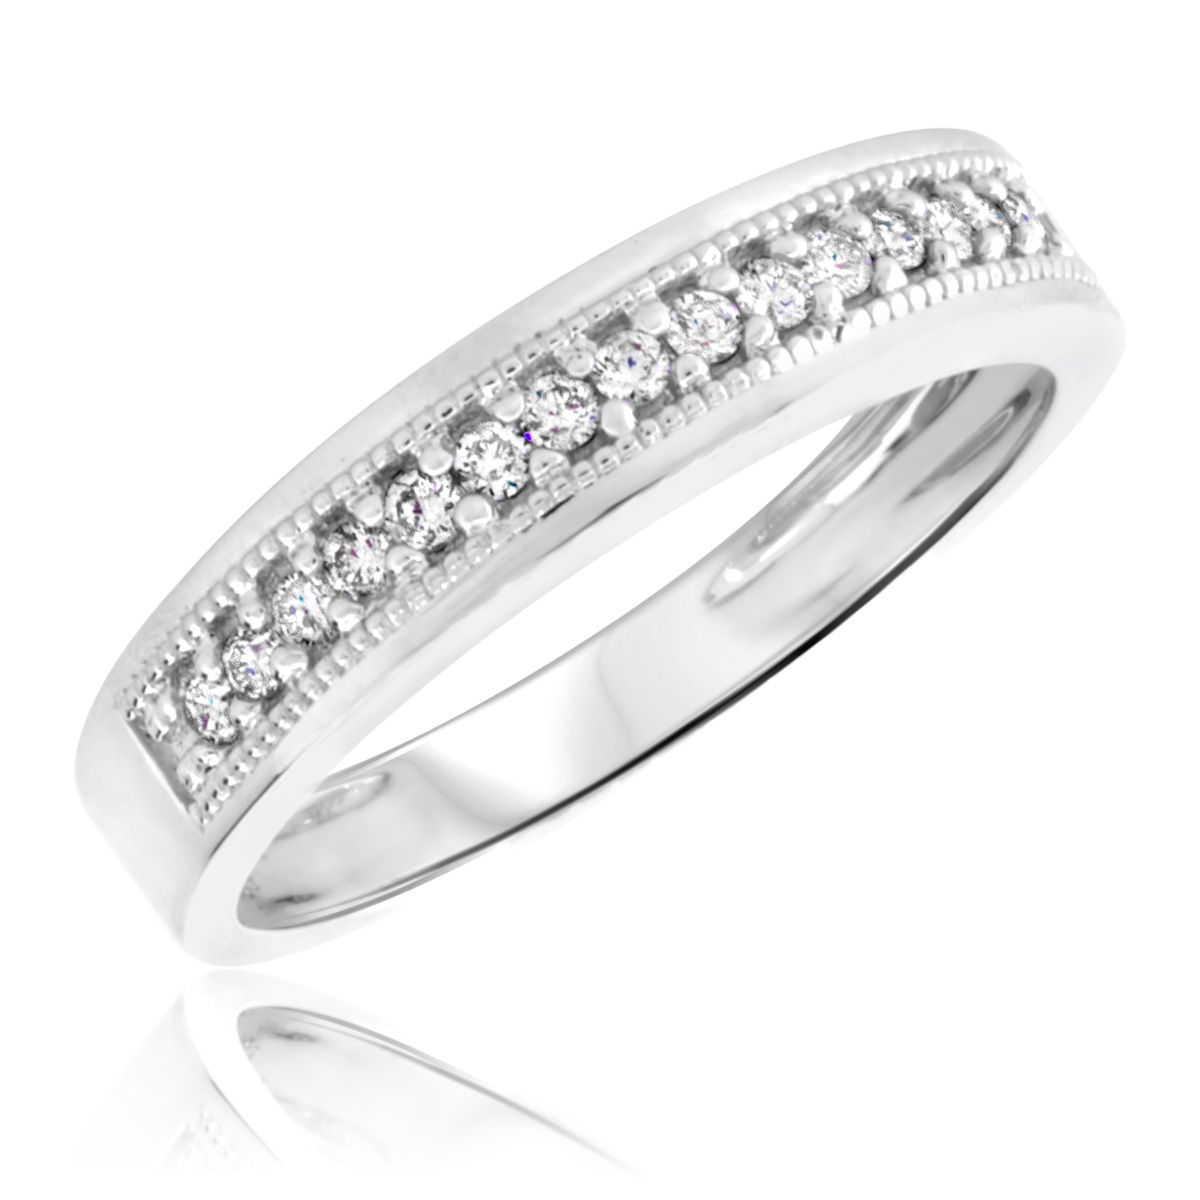 14 Carat TW Diamond Mens Wedding Ring 14K White Gold